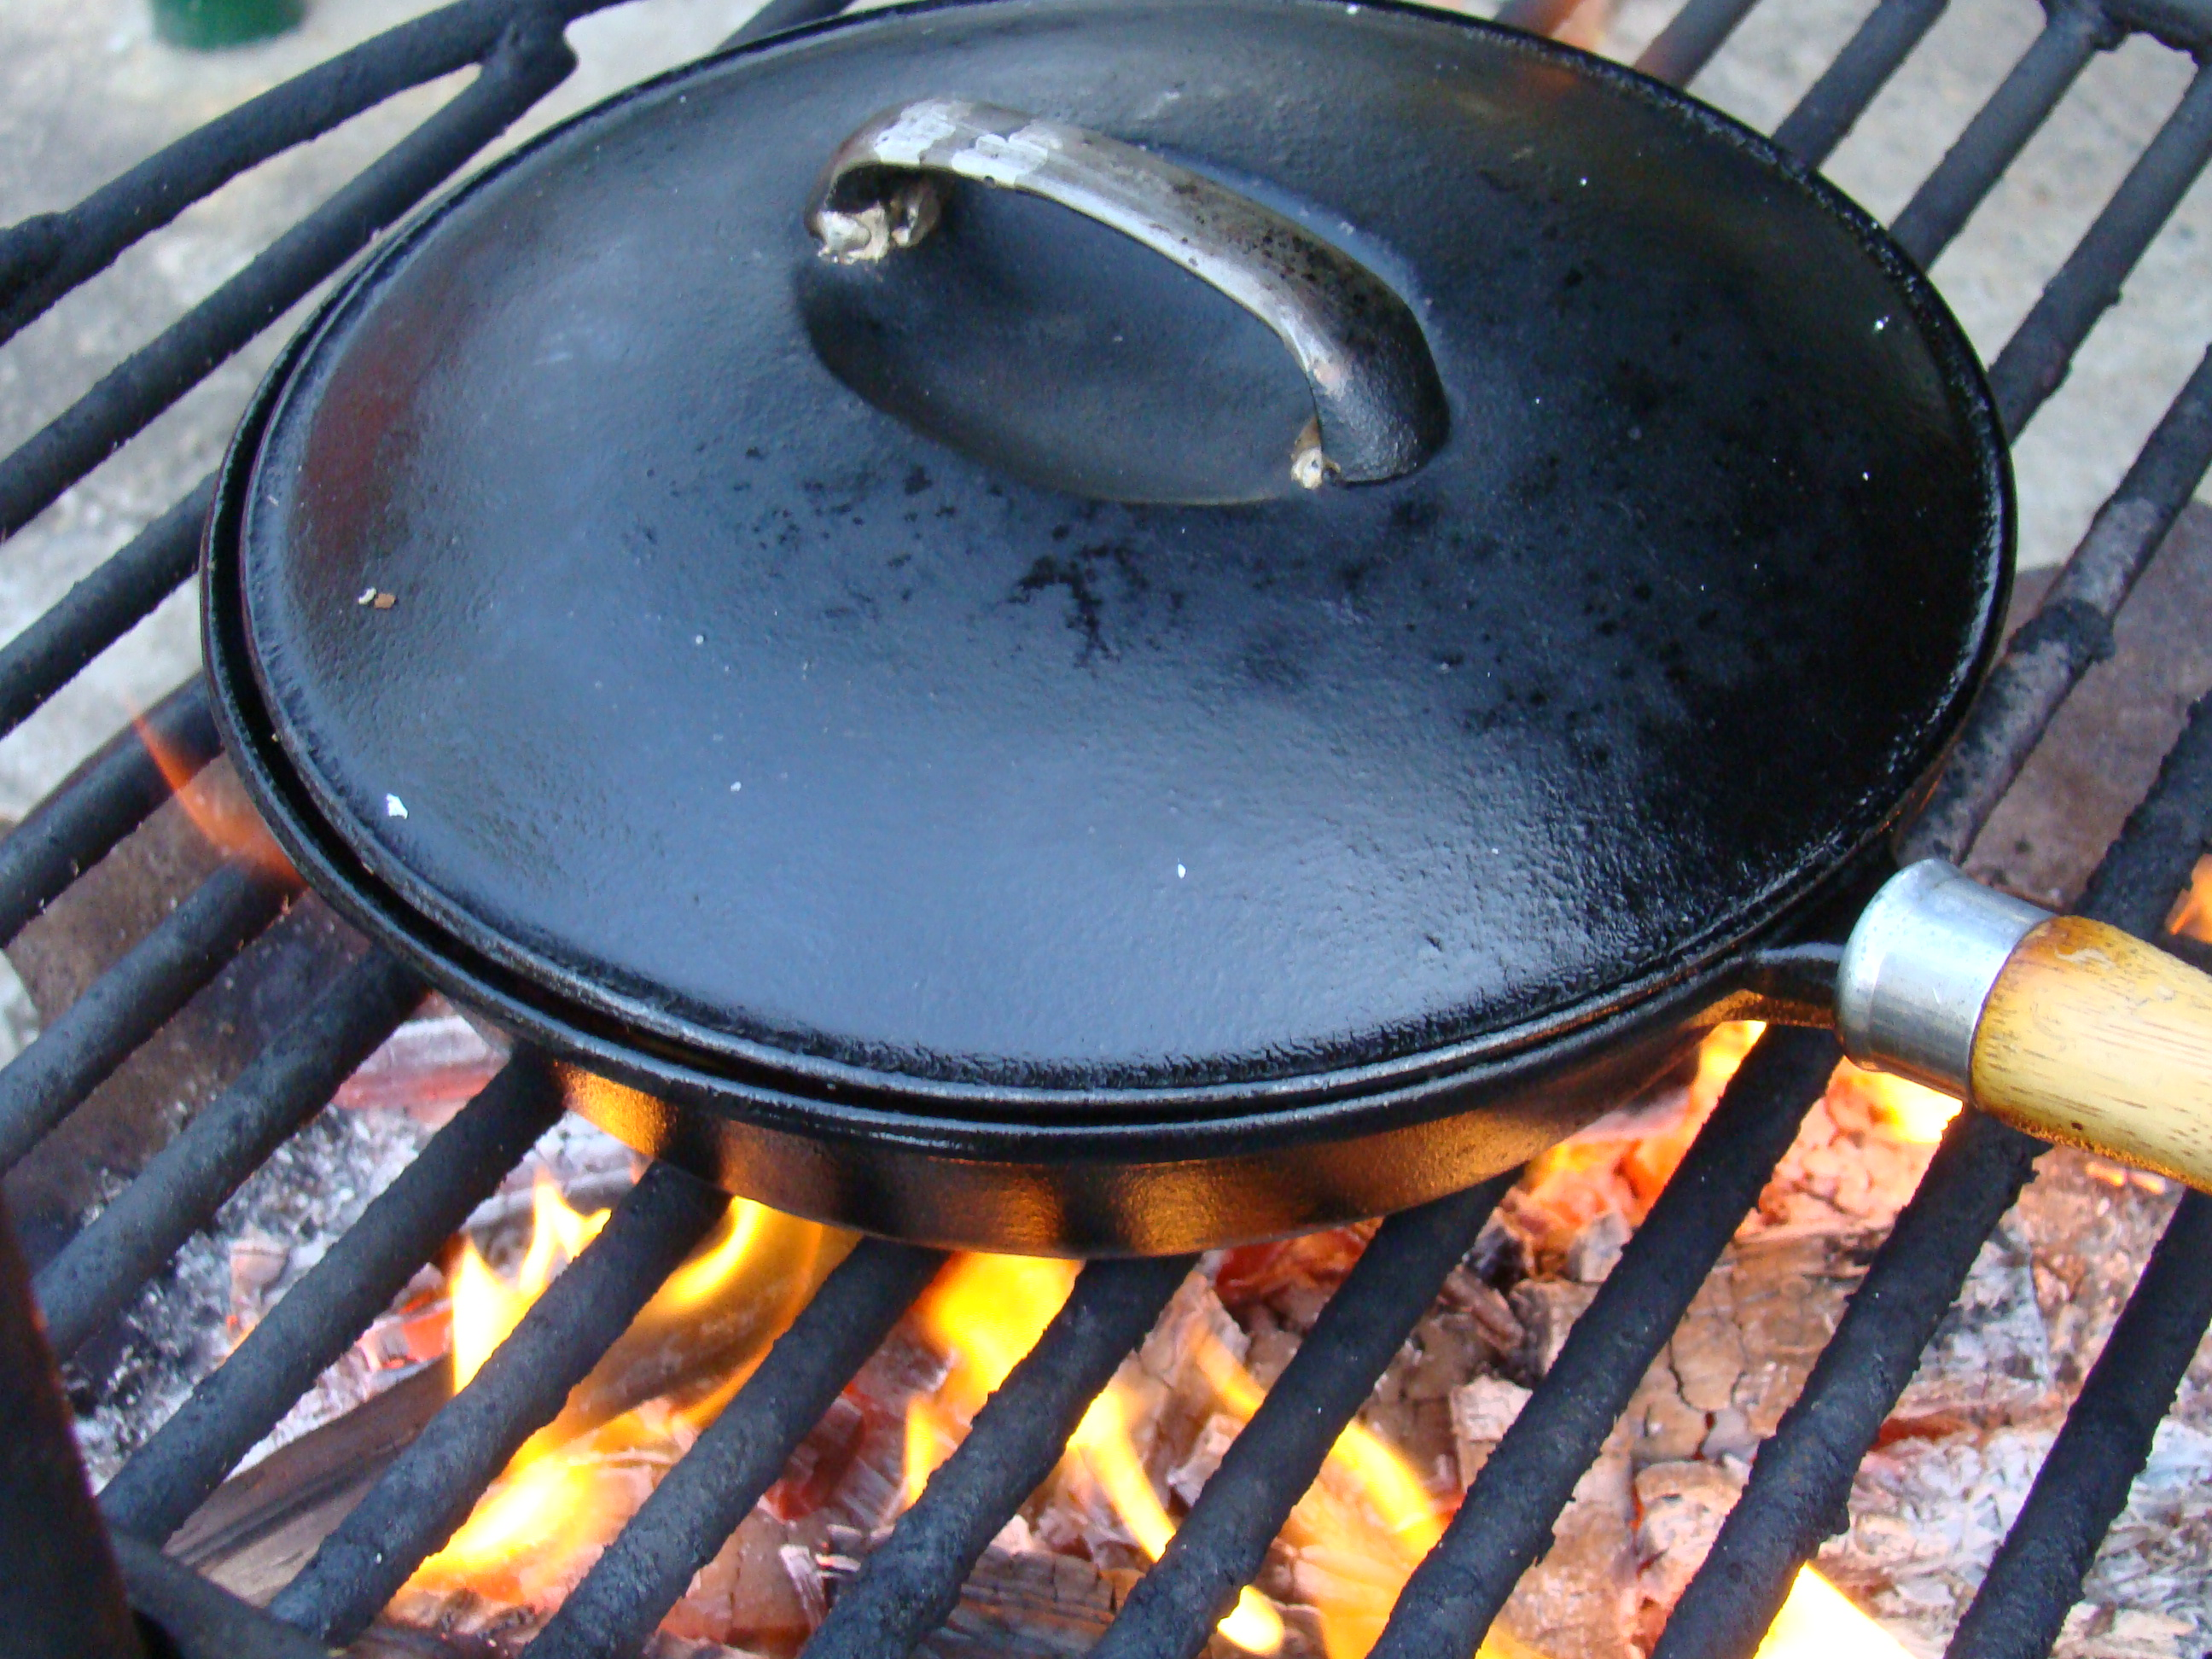 Pizza in a Pan on the Braai Fire | Fired Up Cooking SA